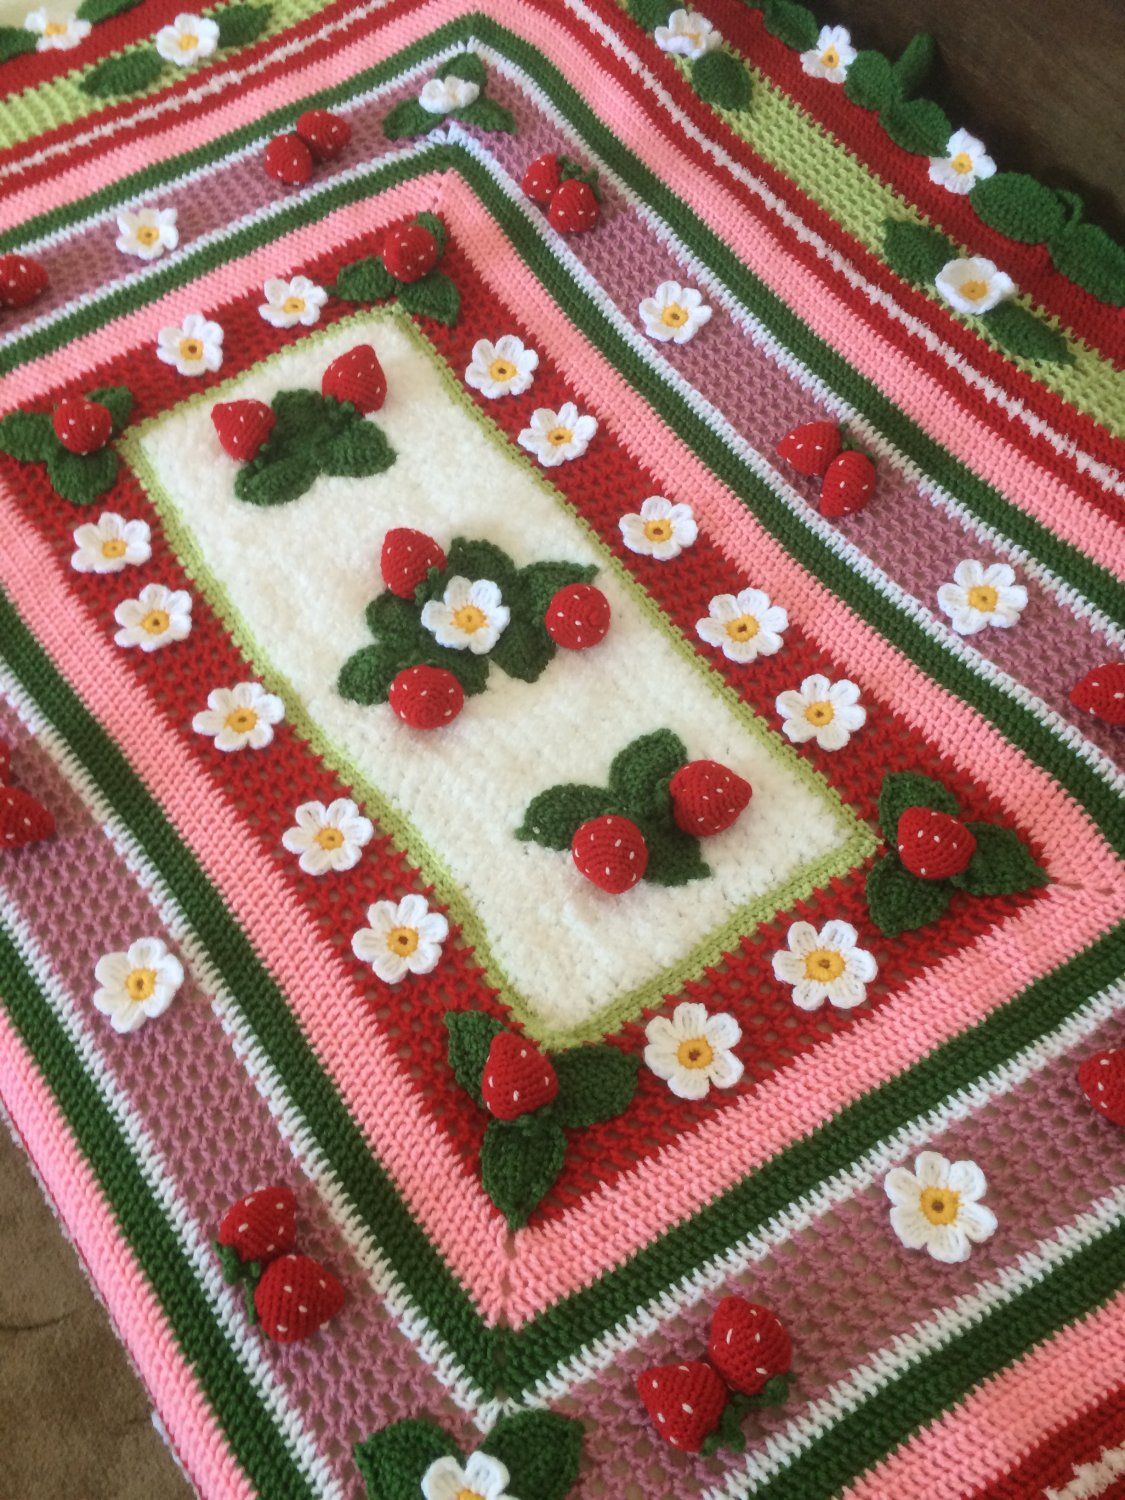 Crochet Strawberry Blanket